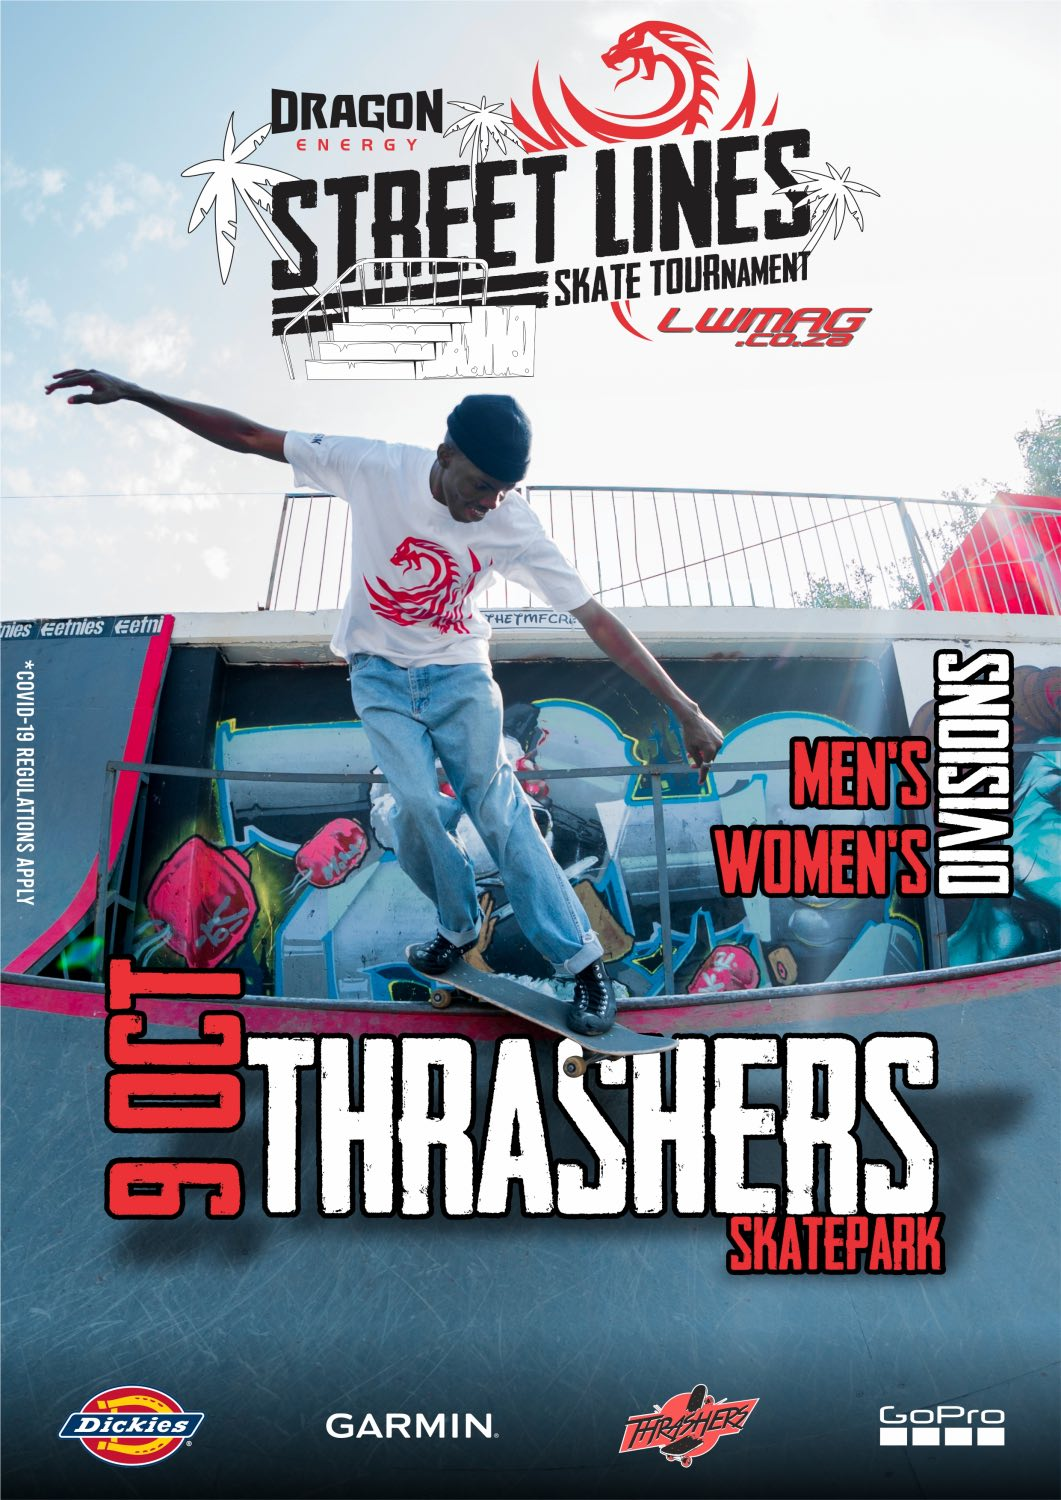 The inaugural Street Lines Skate Tournament announced taking place at Thrashers Skate Park